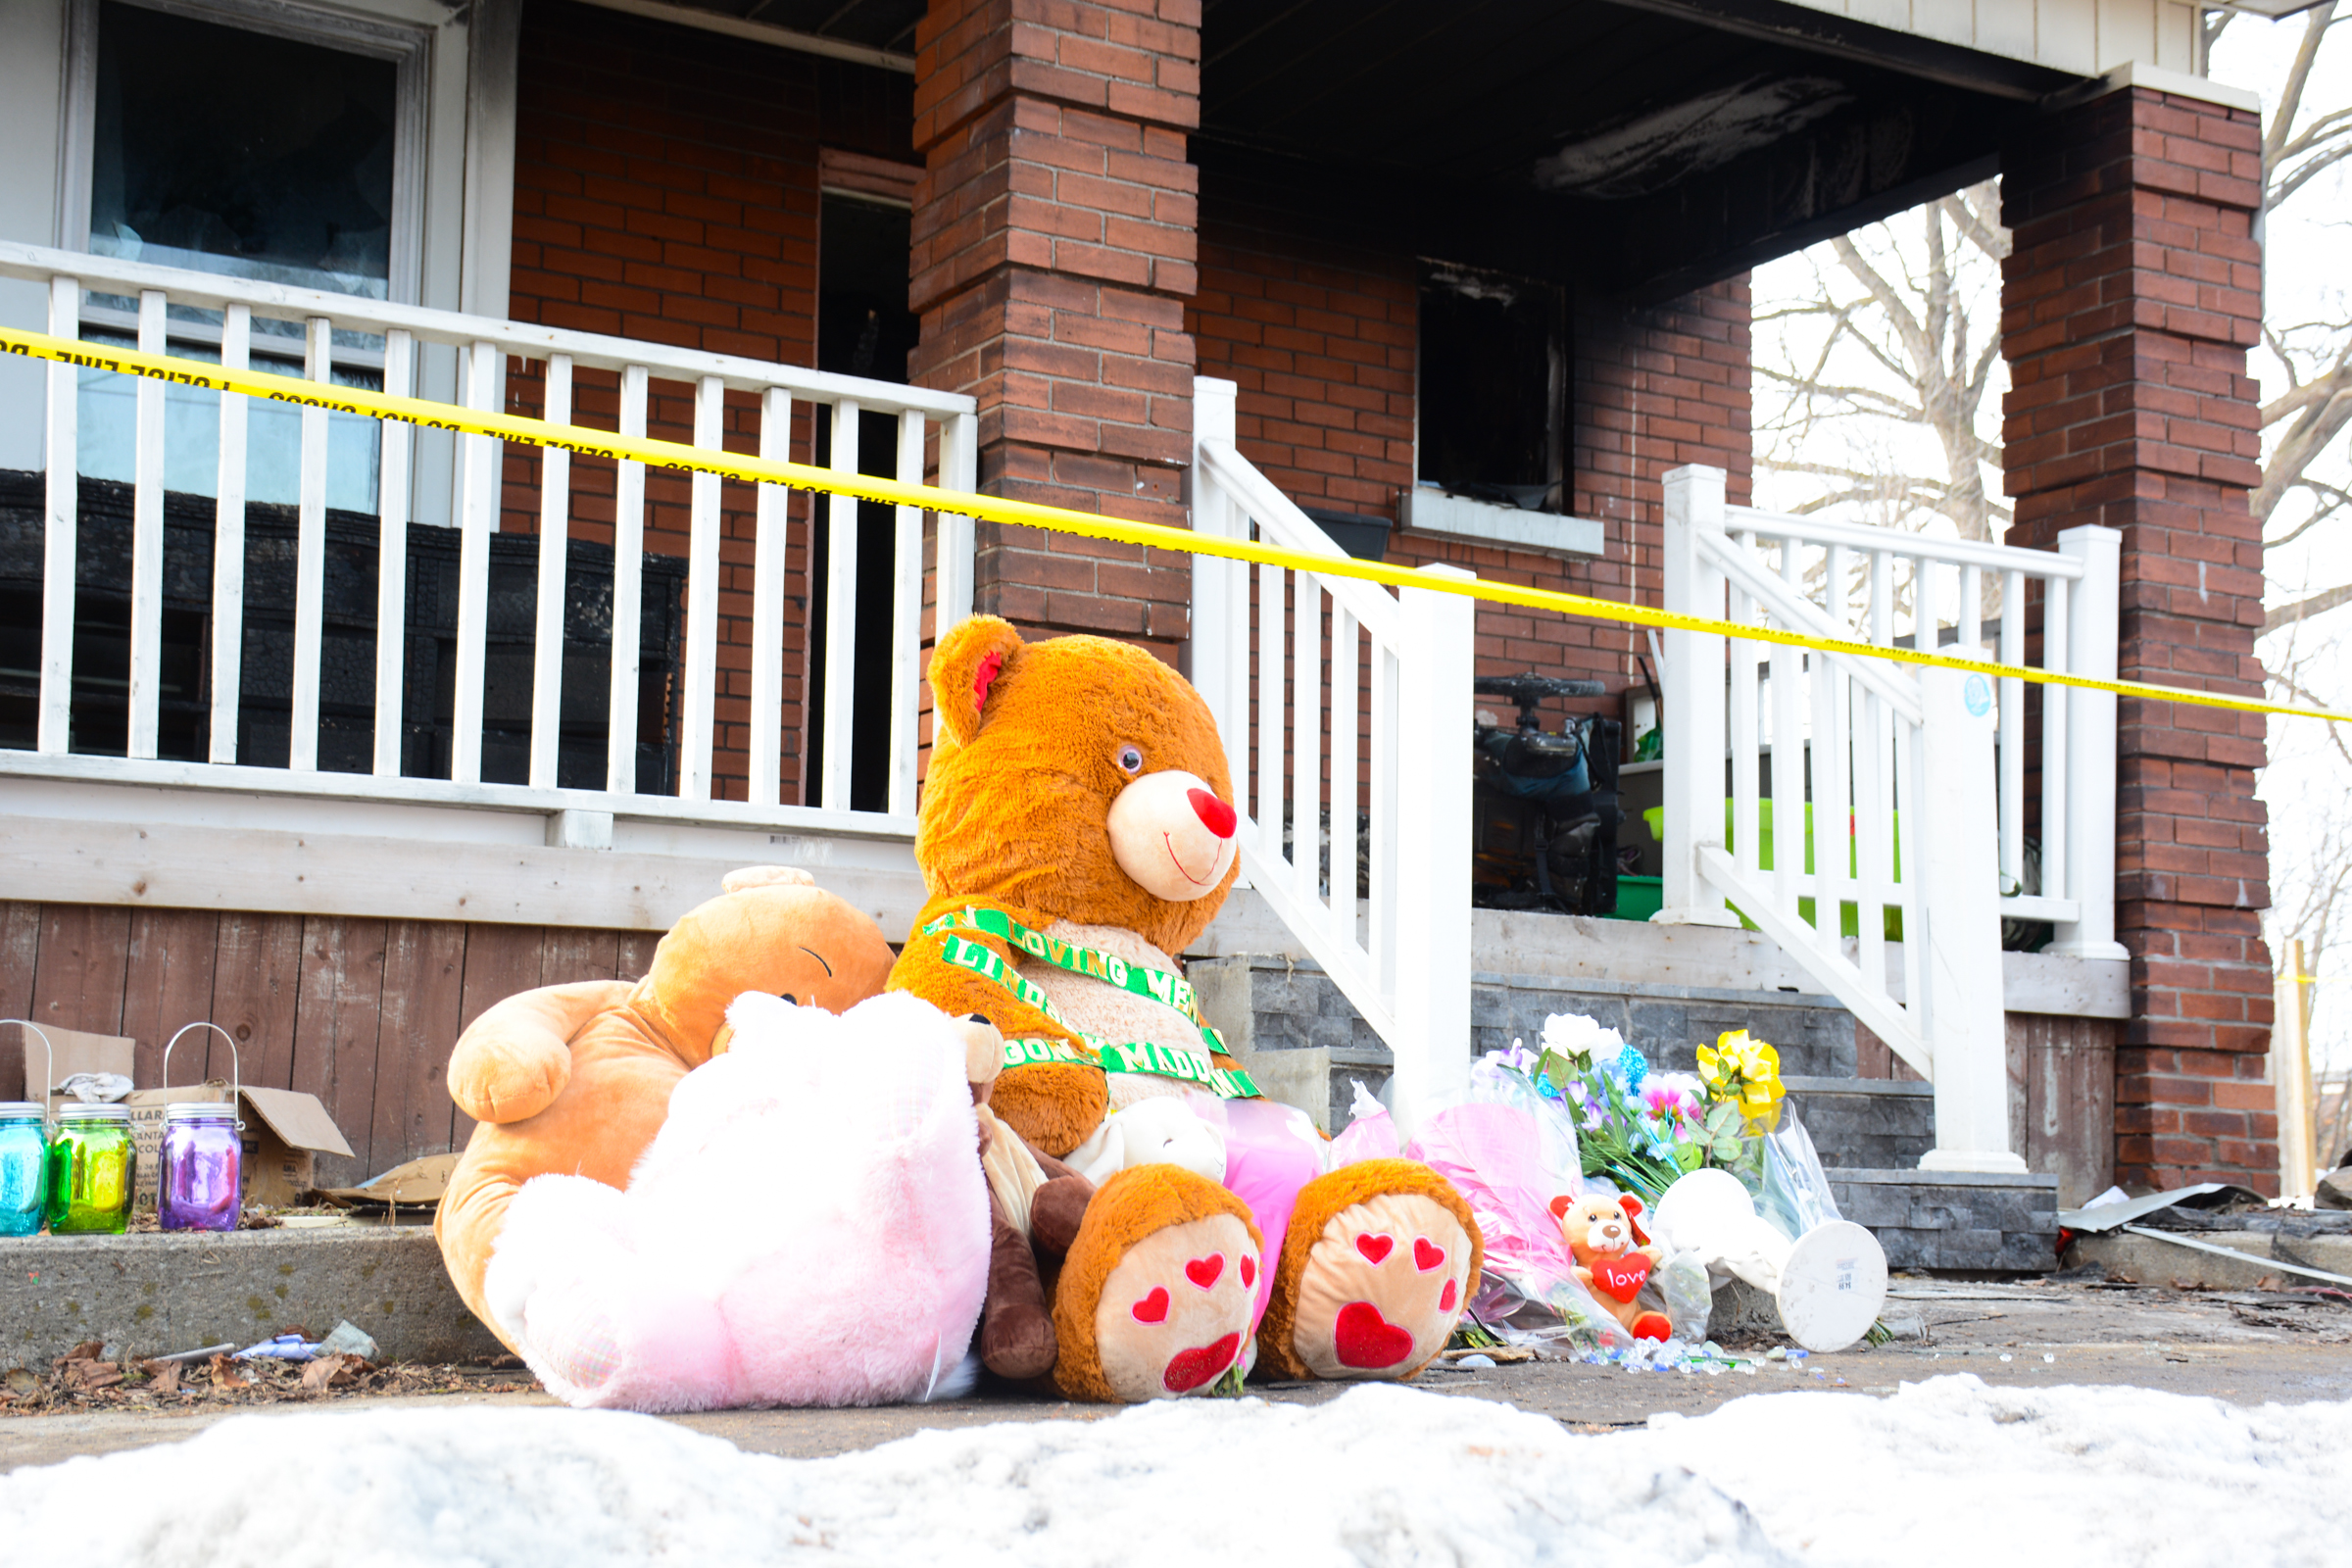 No working smoke alarms in deadly fire  -